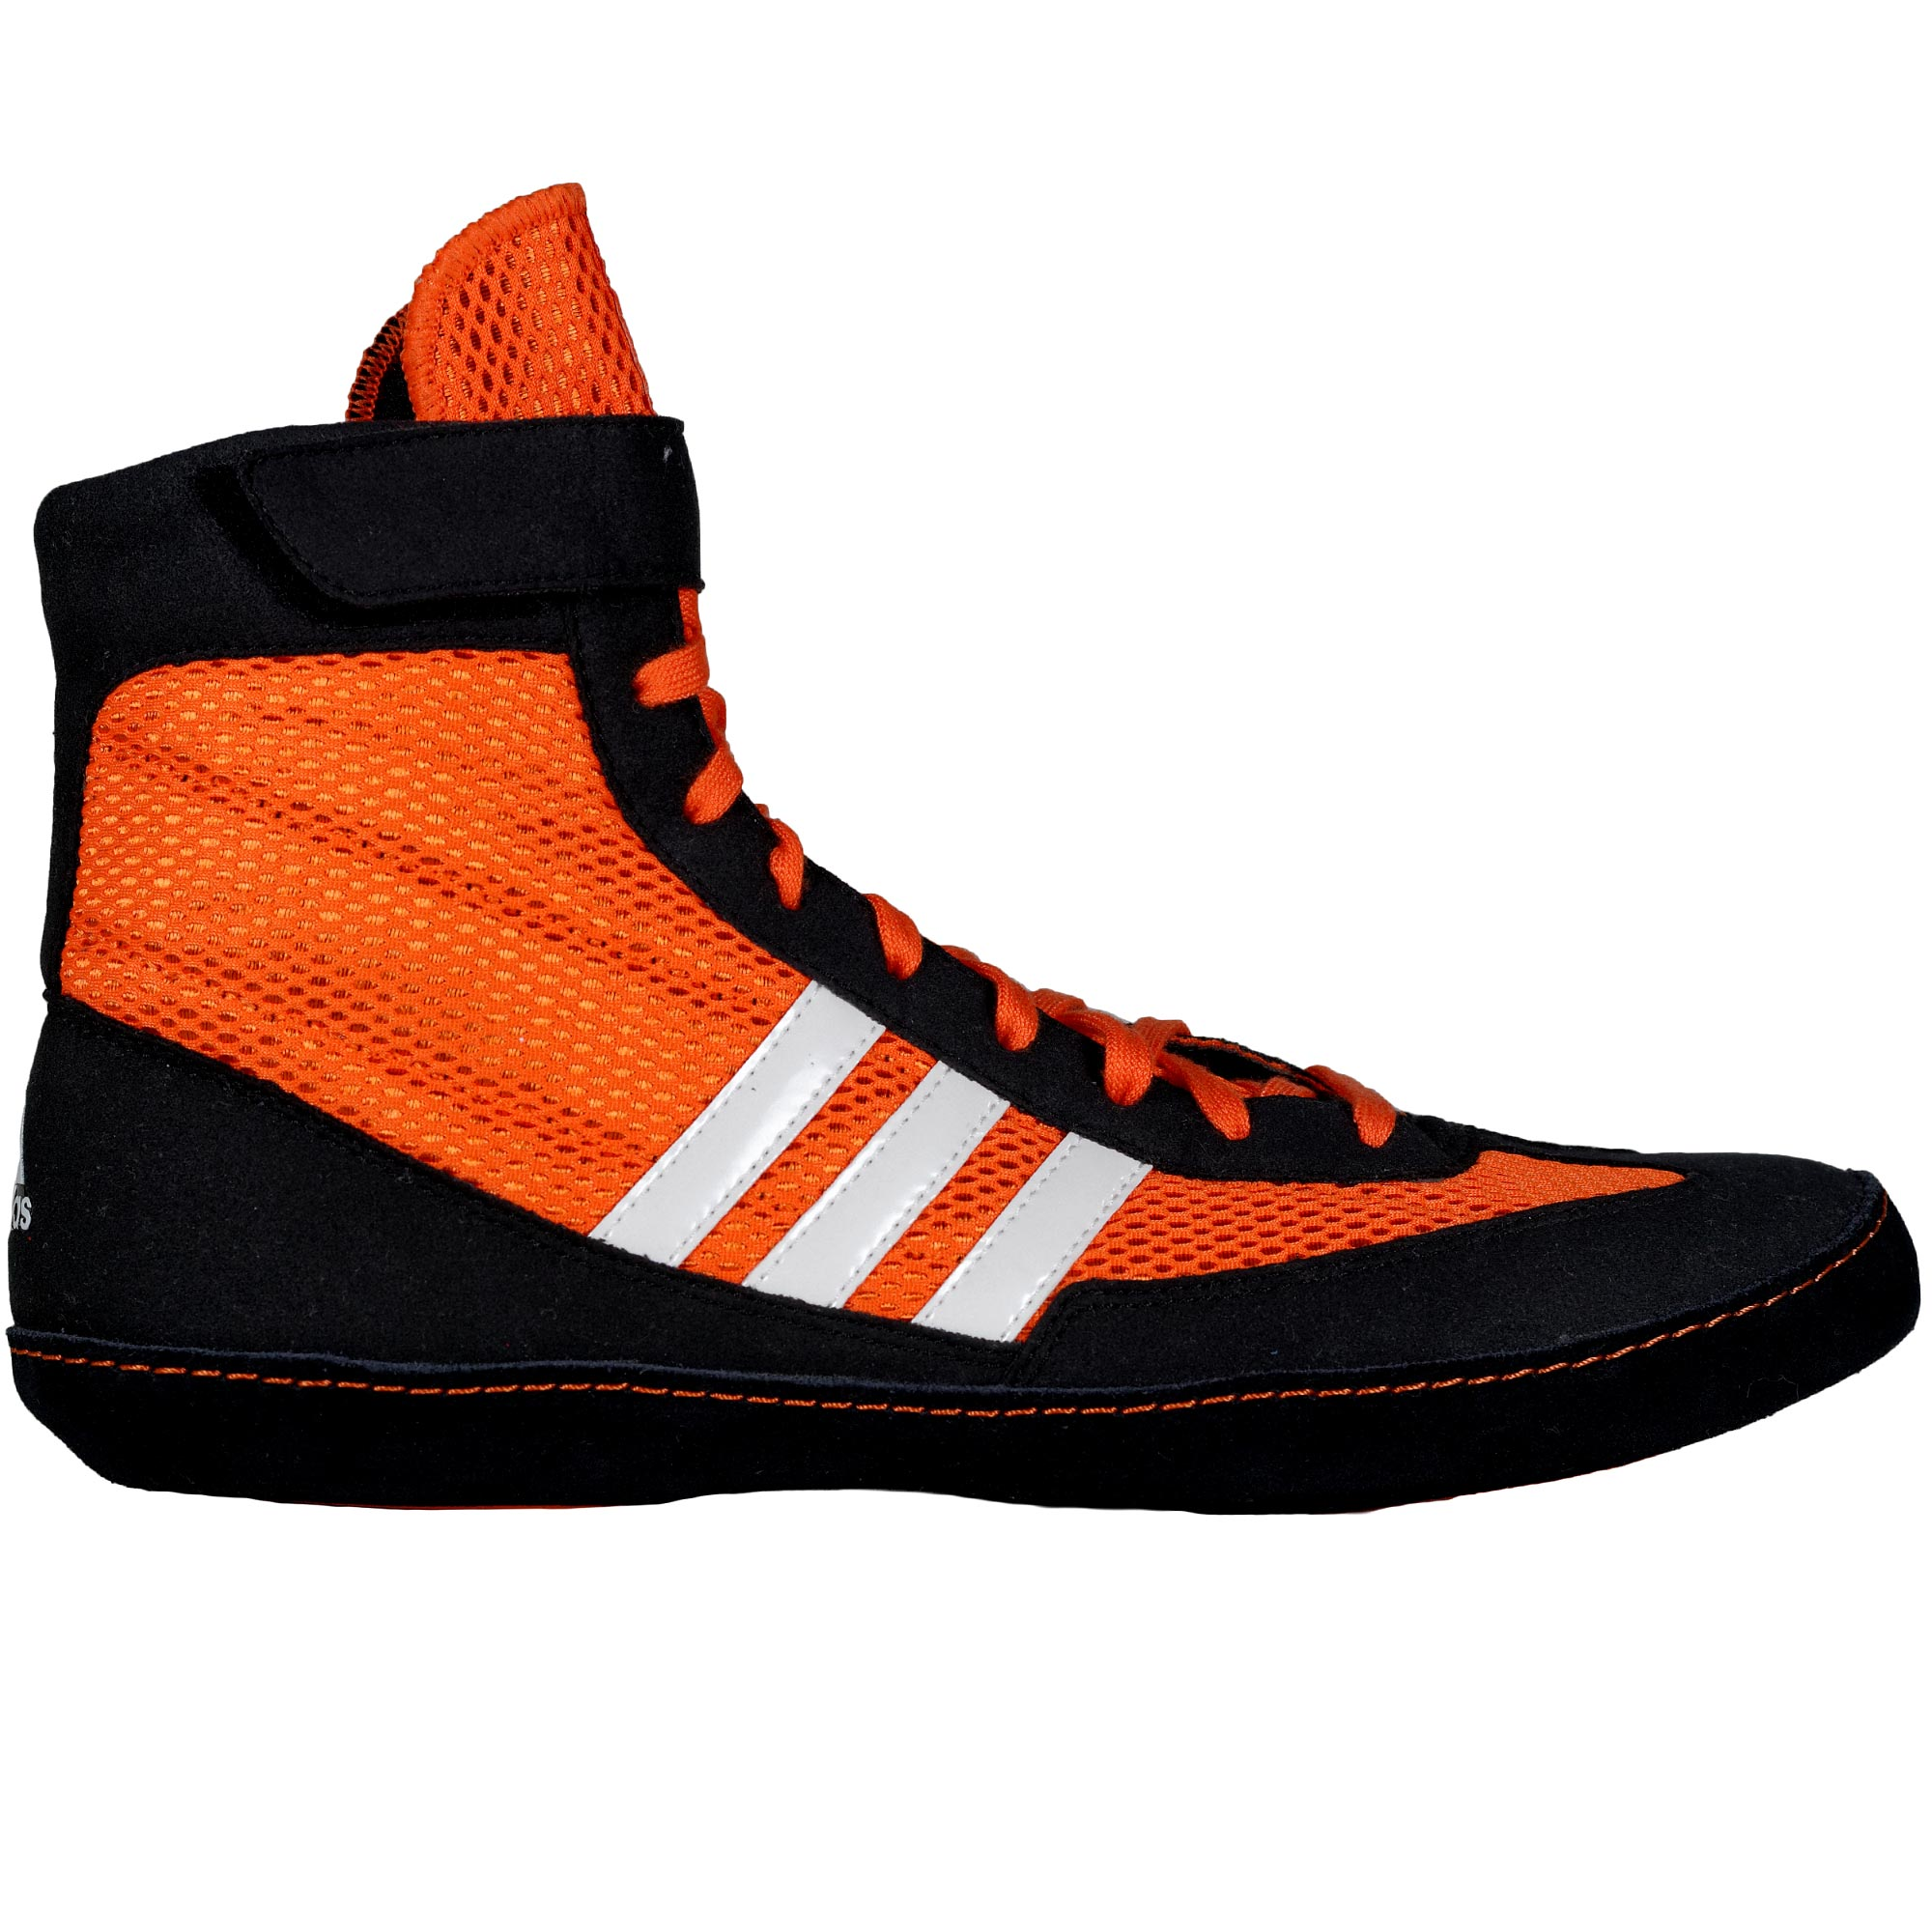 competitive price 78f68 db379 ... Combat Speed 4 Orange White Black insideAdidas Combat Speed 4 Orange  White Black frontAdidas Combat Speed 4 Orange White Black backAdidas Combat  Speed 4 ...